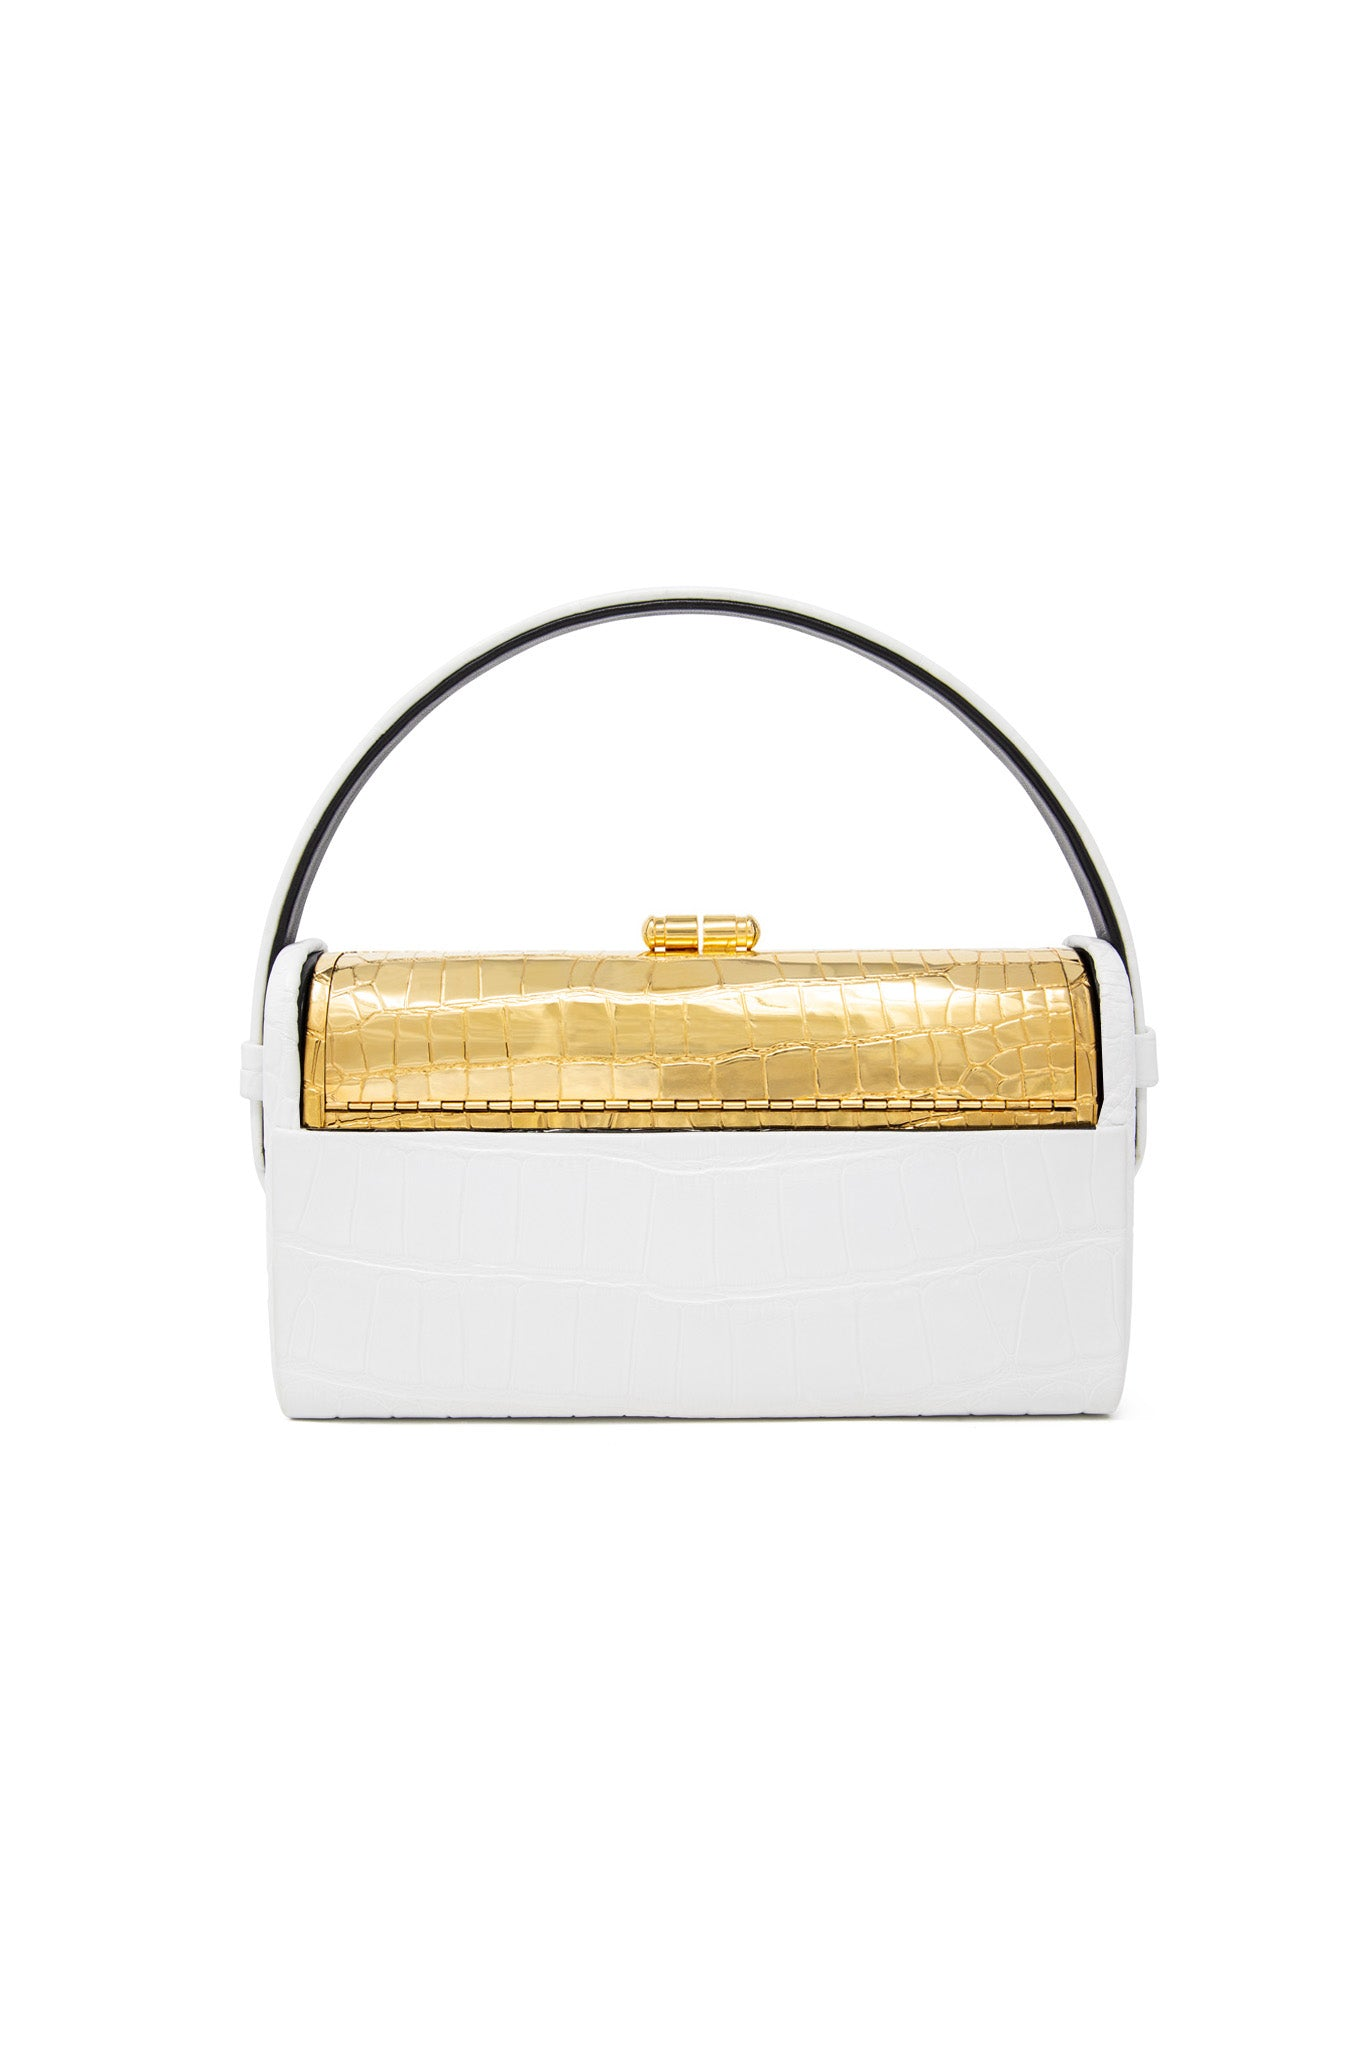 Gold Croco Régine Minaudière with White Shiny Alligator Case